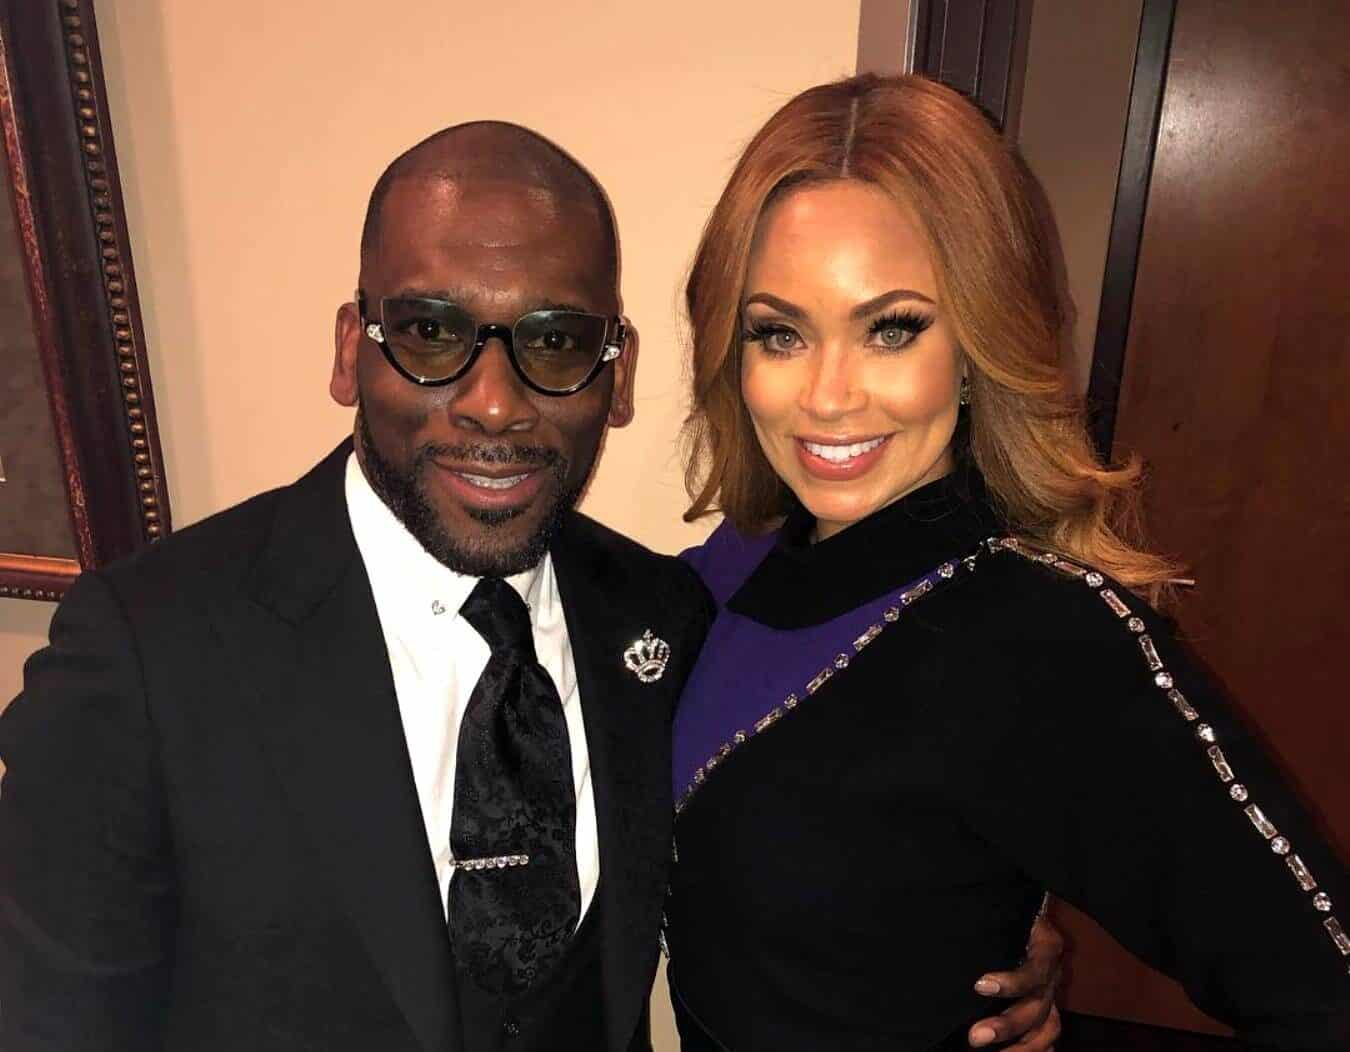 """RHOP Star Gizelle Bryant Reacts to Rumors of Ex-Husband and Current Partner Jamal Bryant Fathering a Child With Another Woman as Jamal Shuts it Down and Threatens Legal Action Against Bloggers: """"You Got 72 Hours"""""""